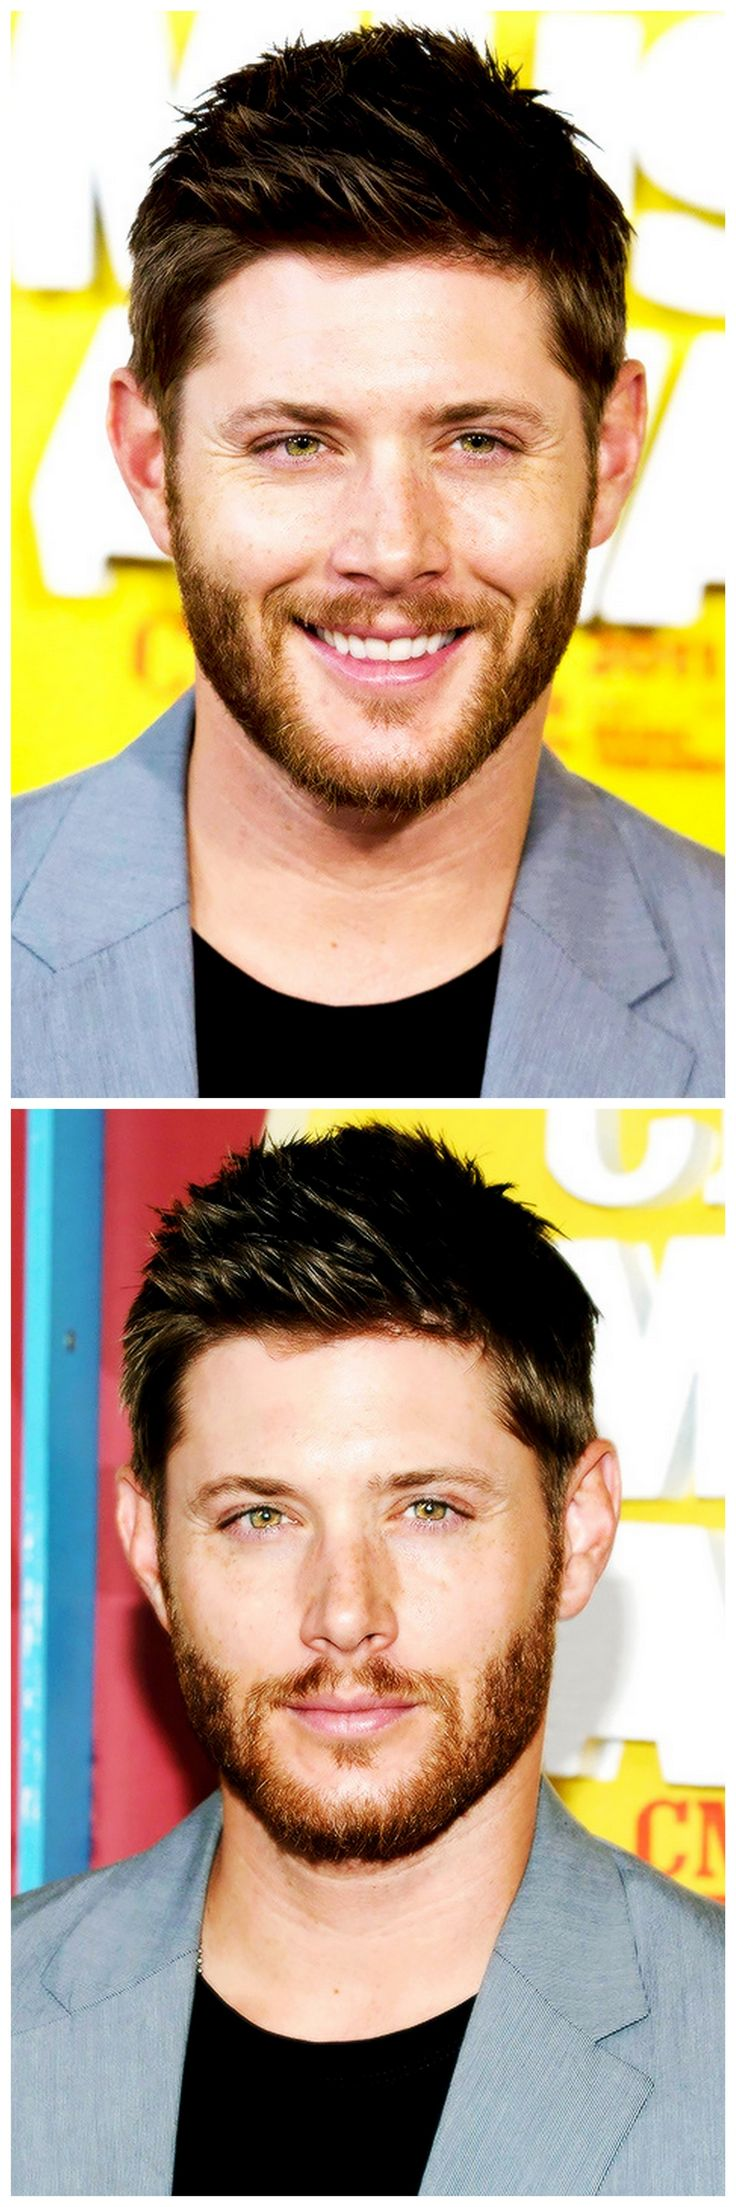 Jensen at The CMT Music Awards 2011